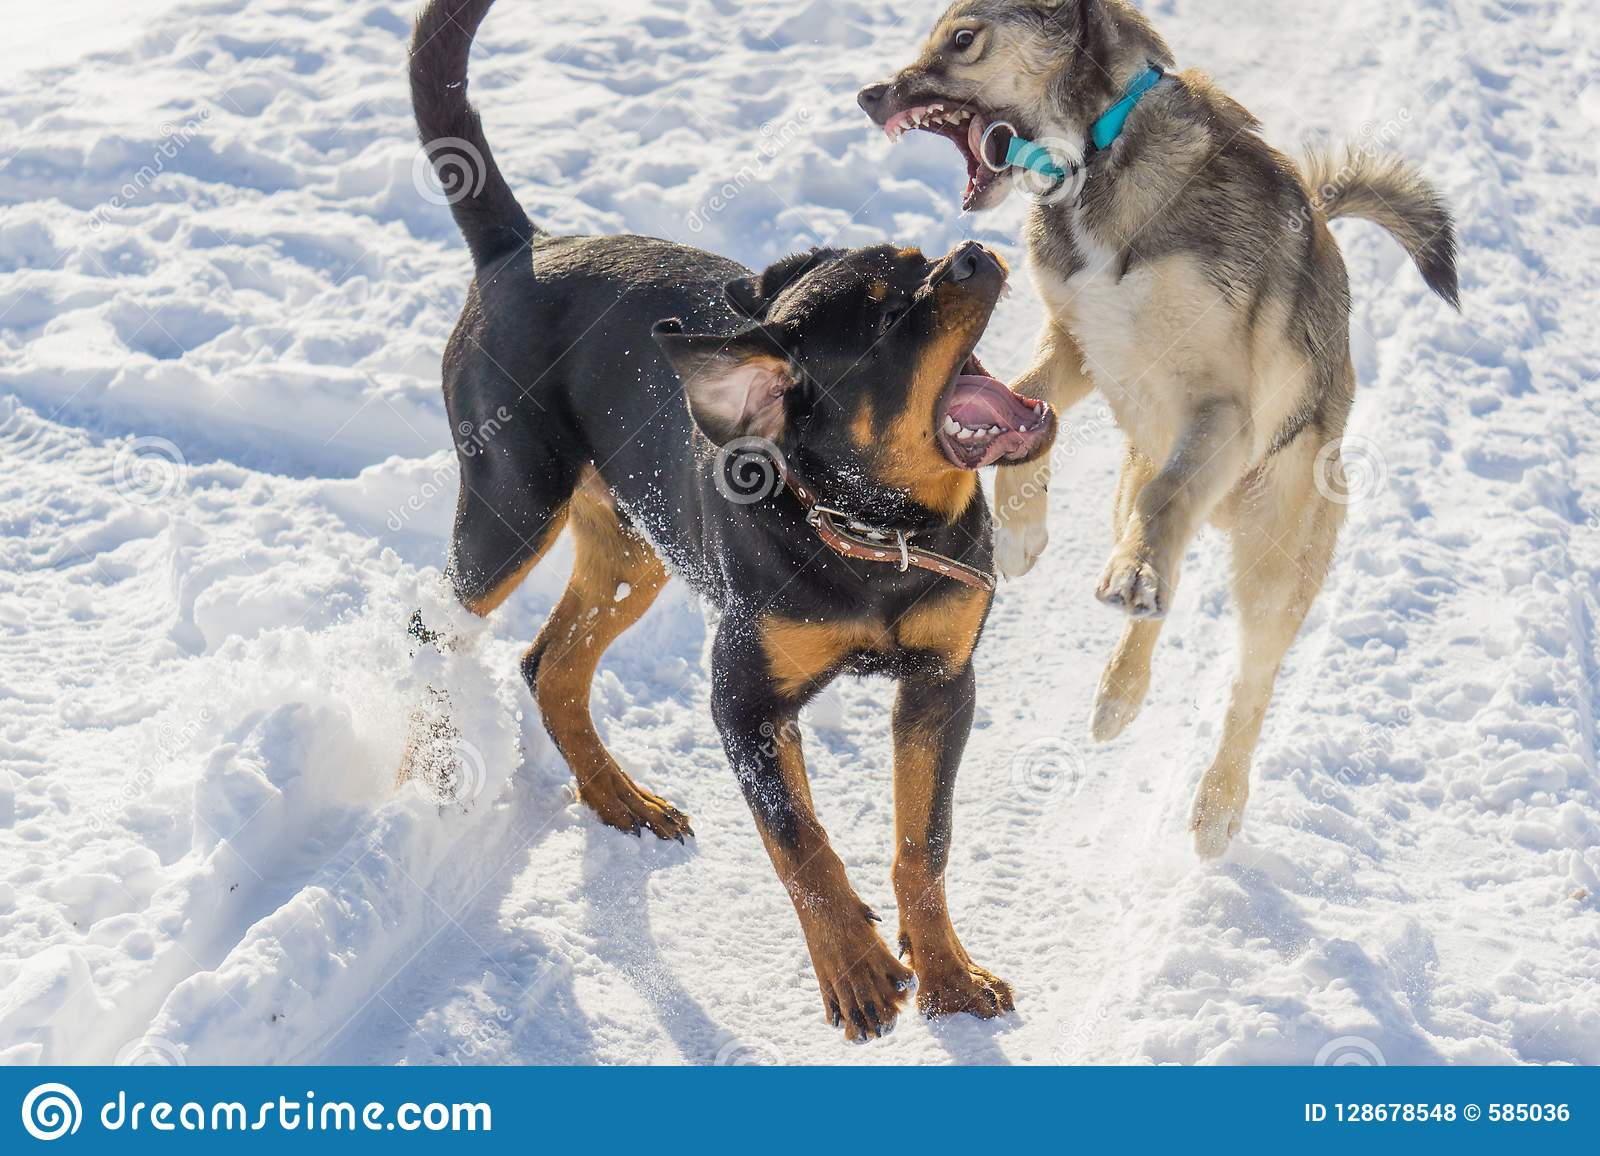 Dog fight in the winter